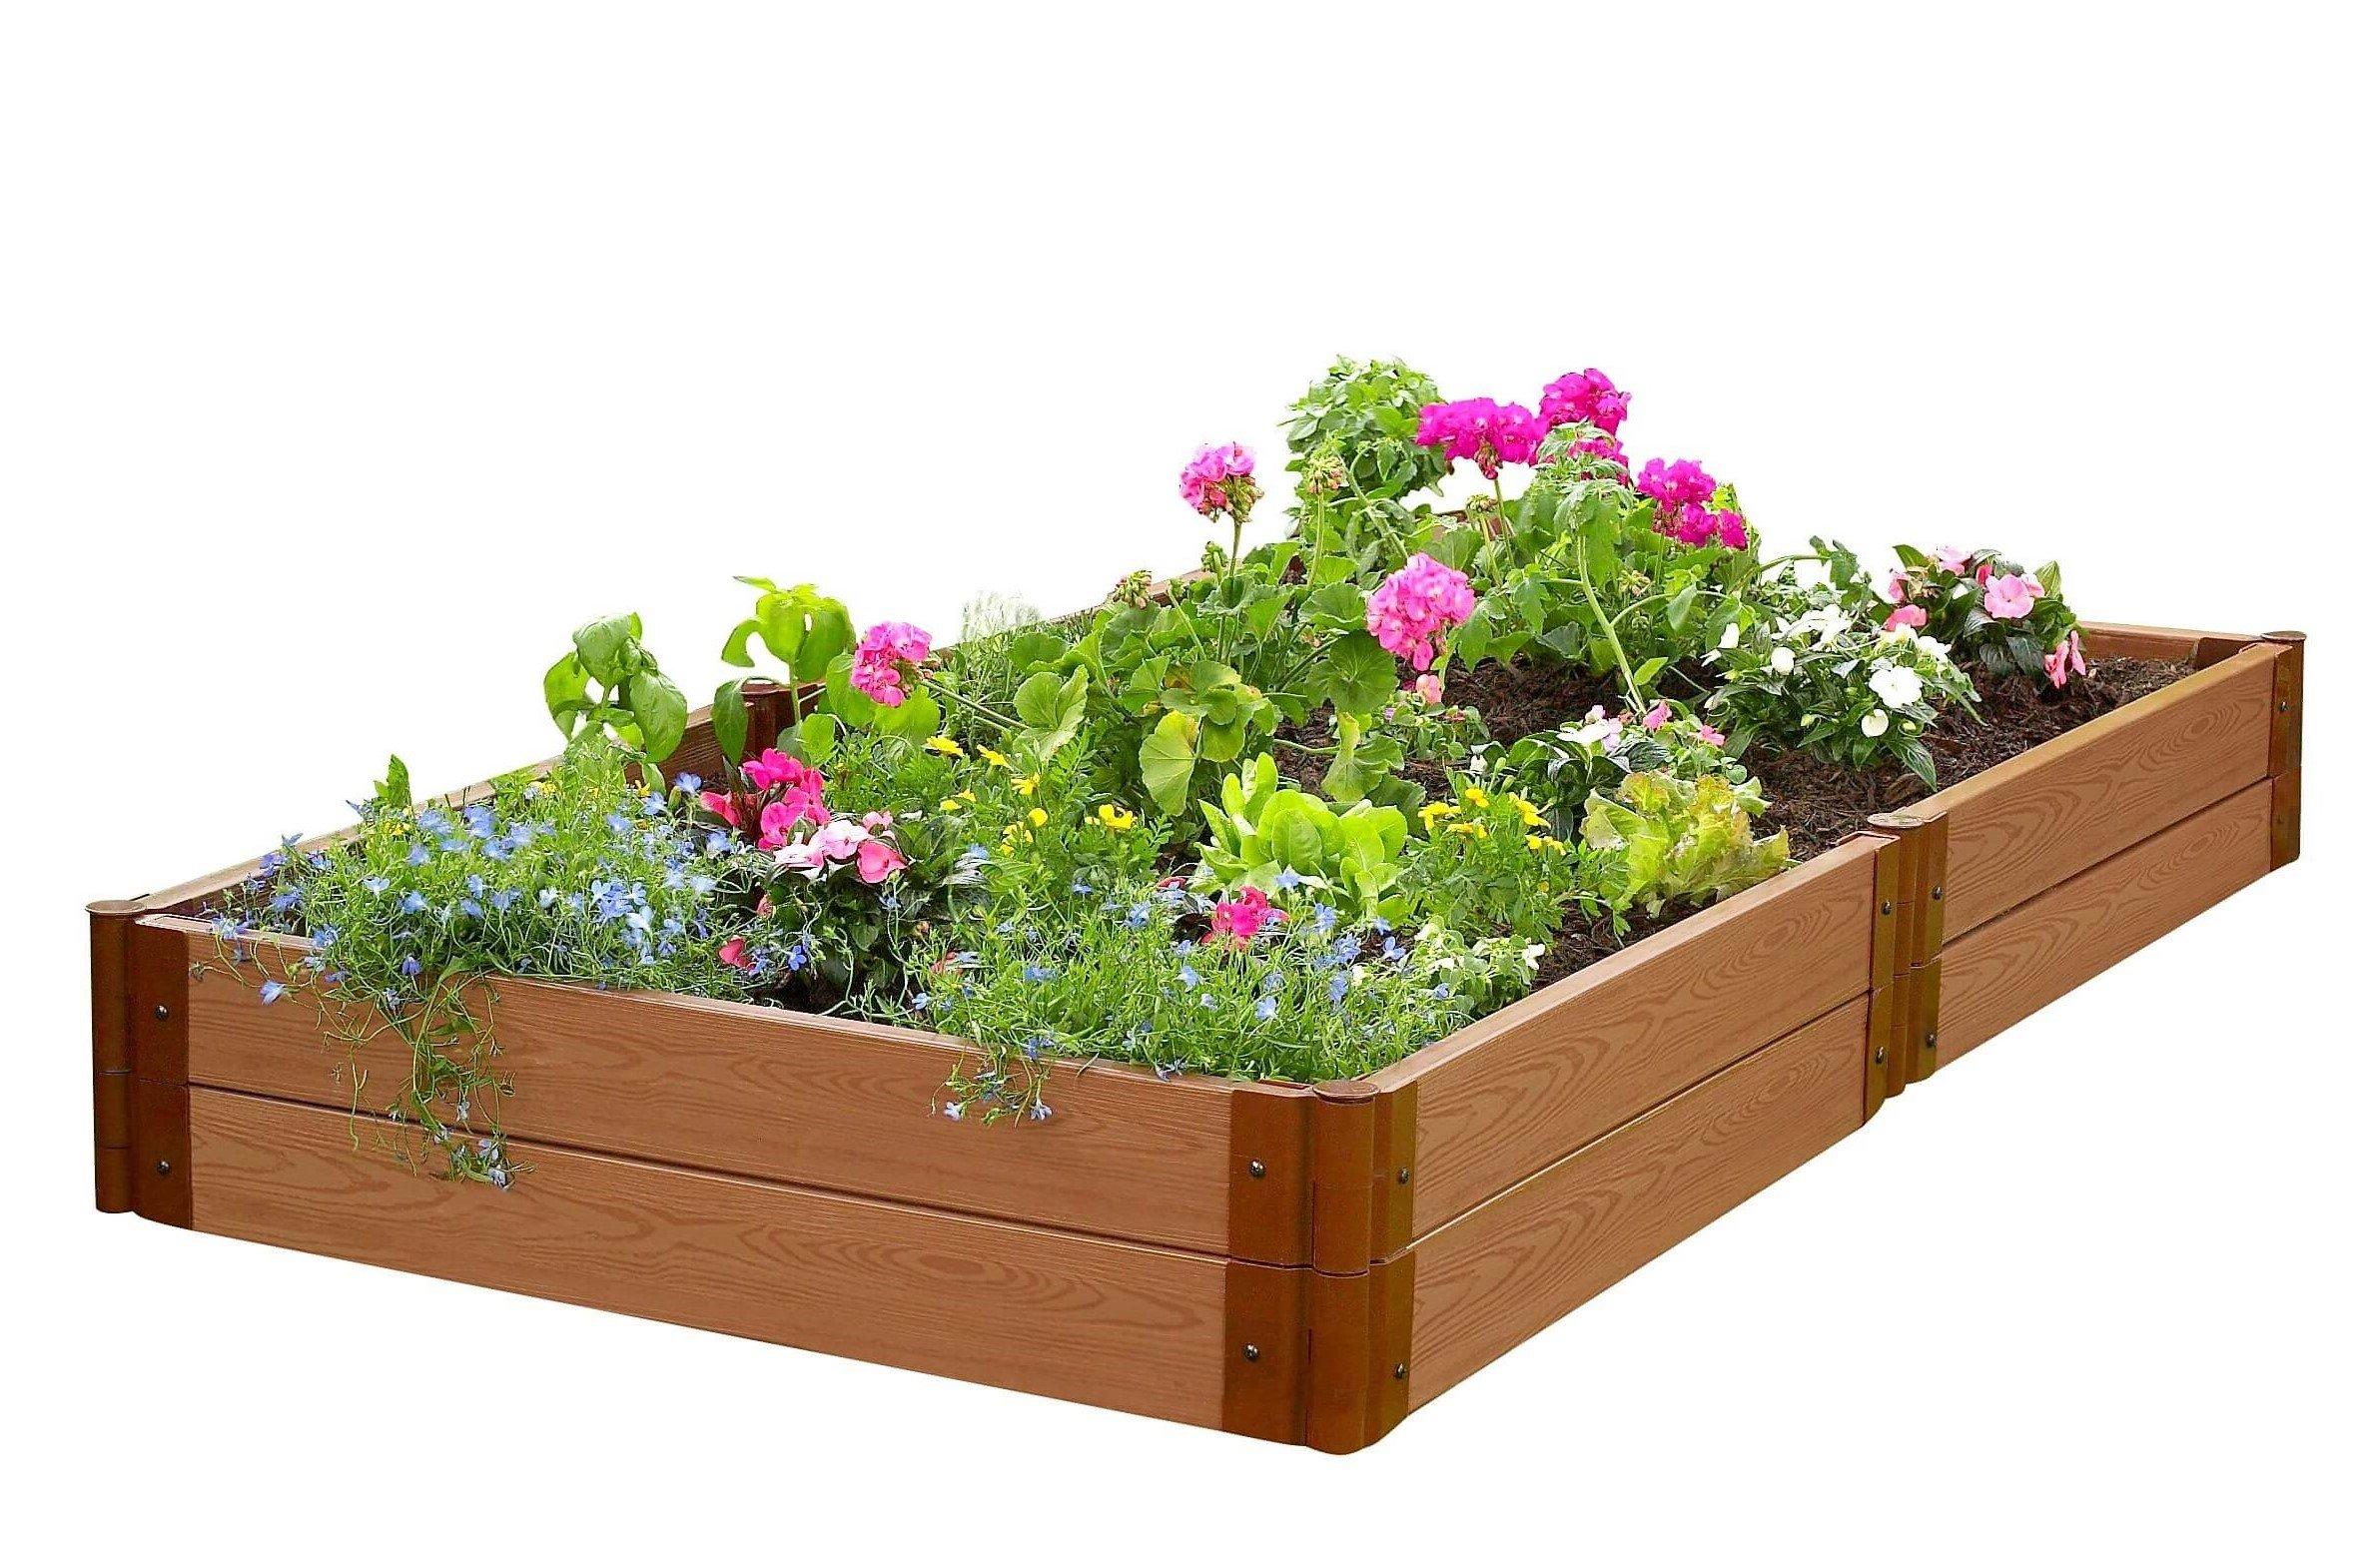 Two Inch Series 4ft. x 8ft. x 11in. Composite Raised Garden Bed Kit by Frame It All